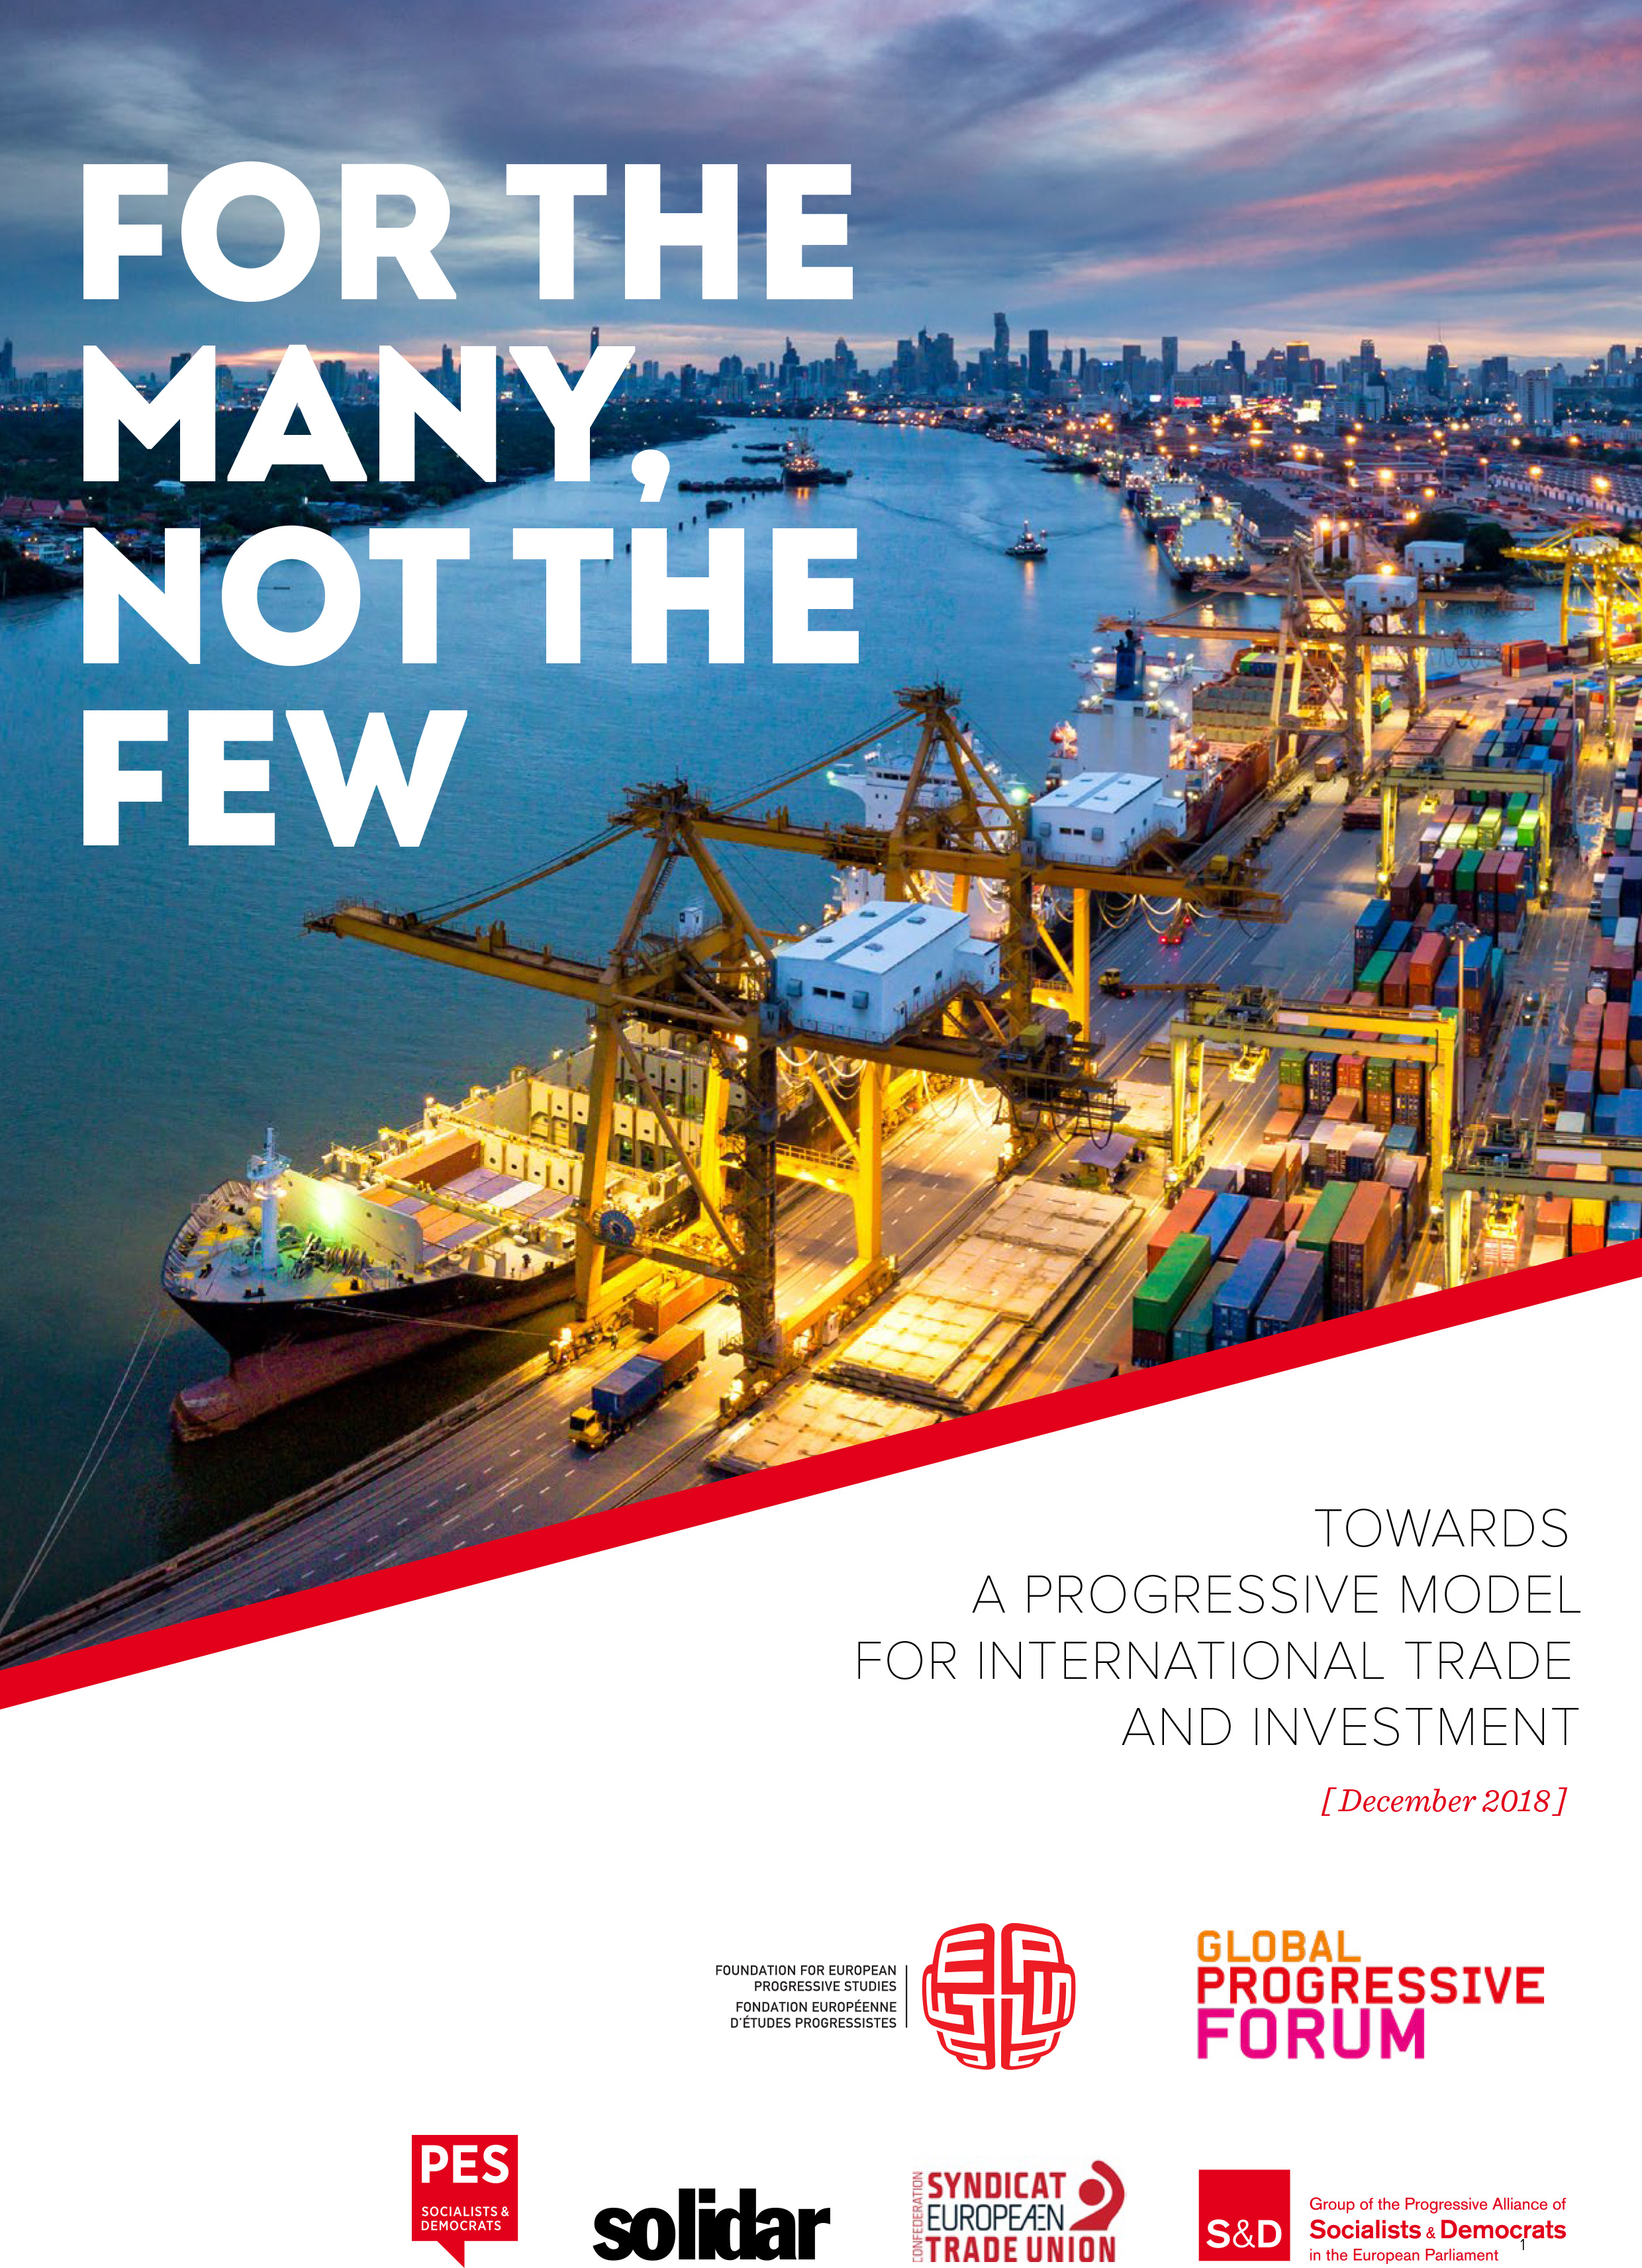 Towards a Progressive Model for International Trade and Investment